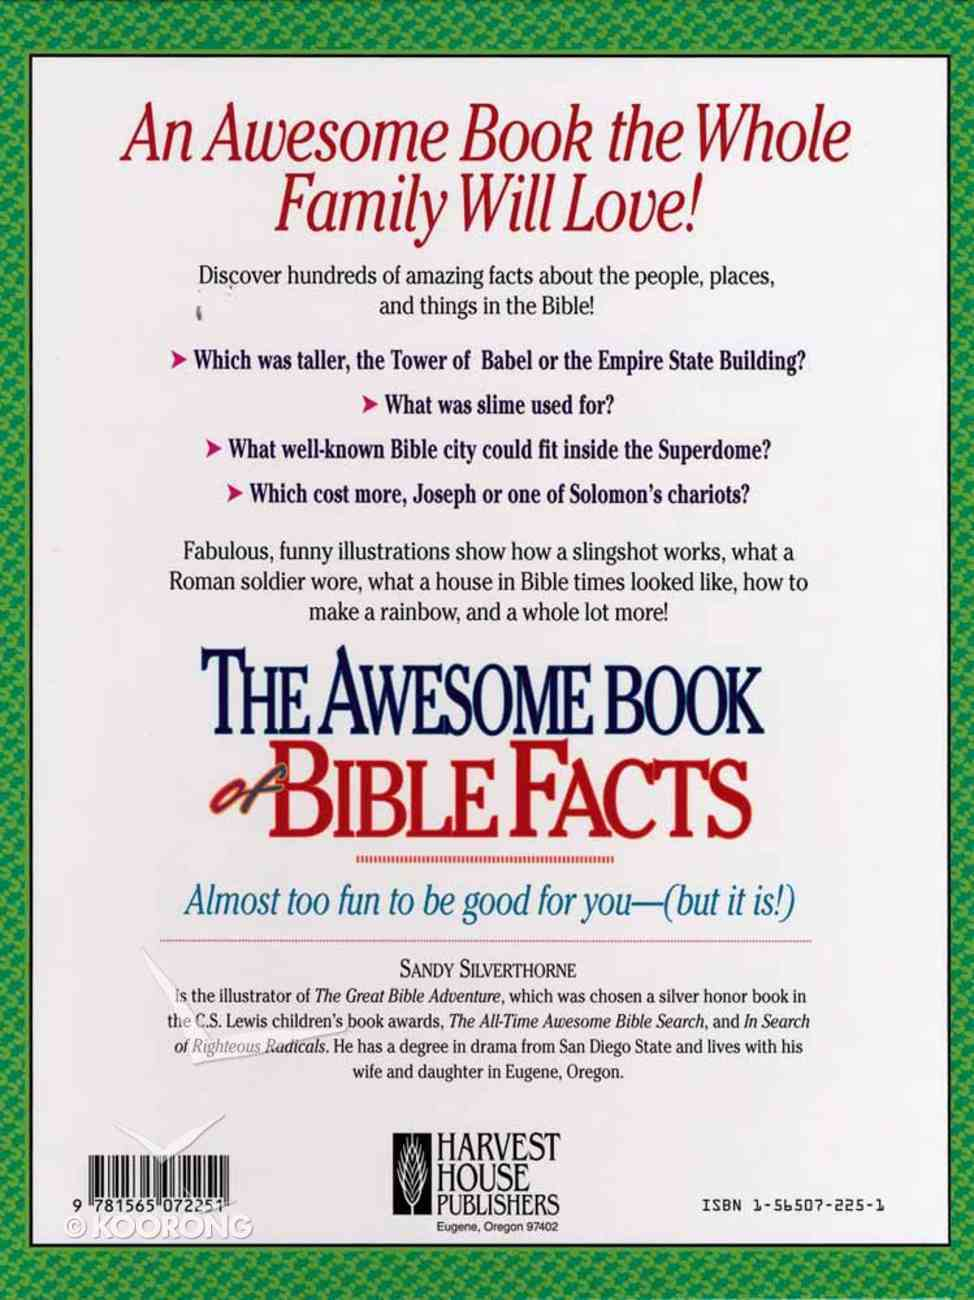 Awesome Book of Bible Facts Hardback